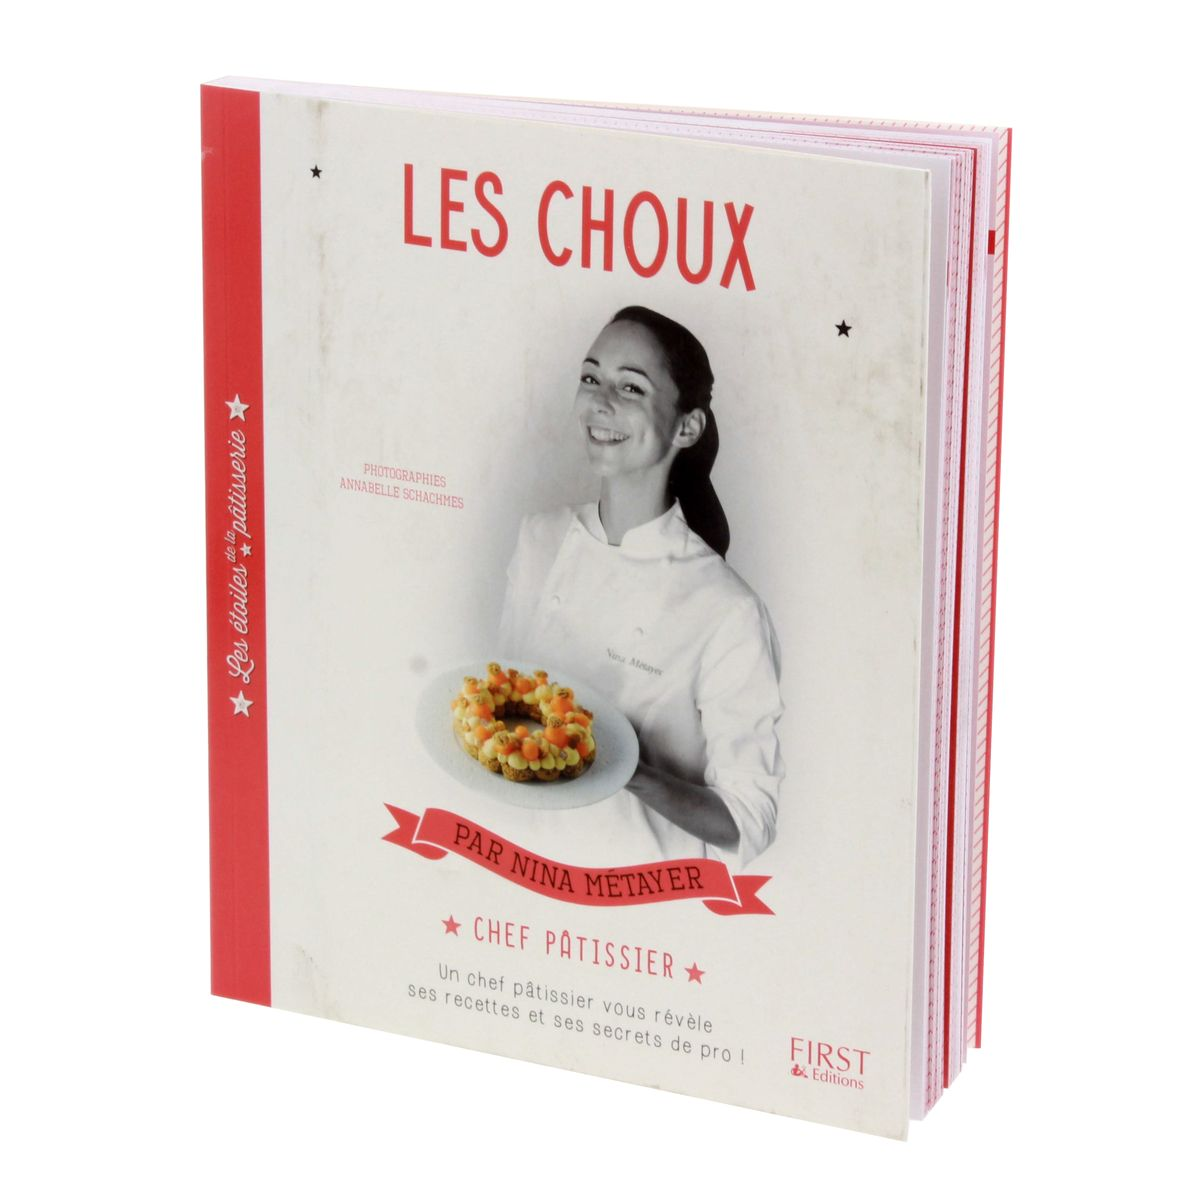 Les choux - First Editions